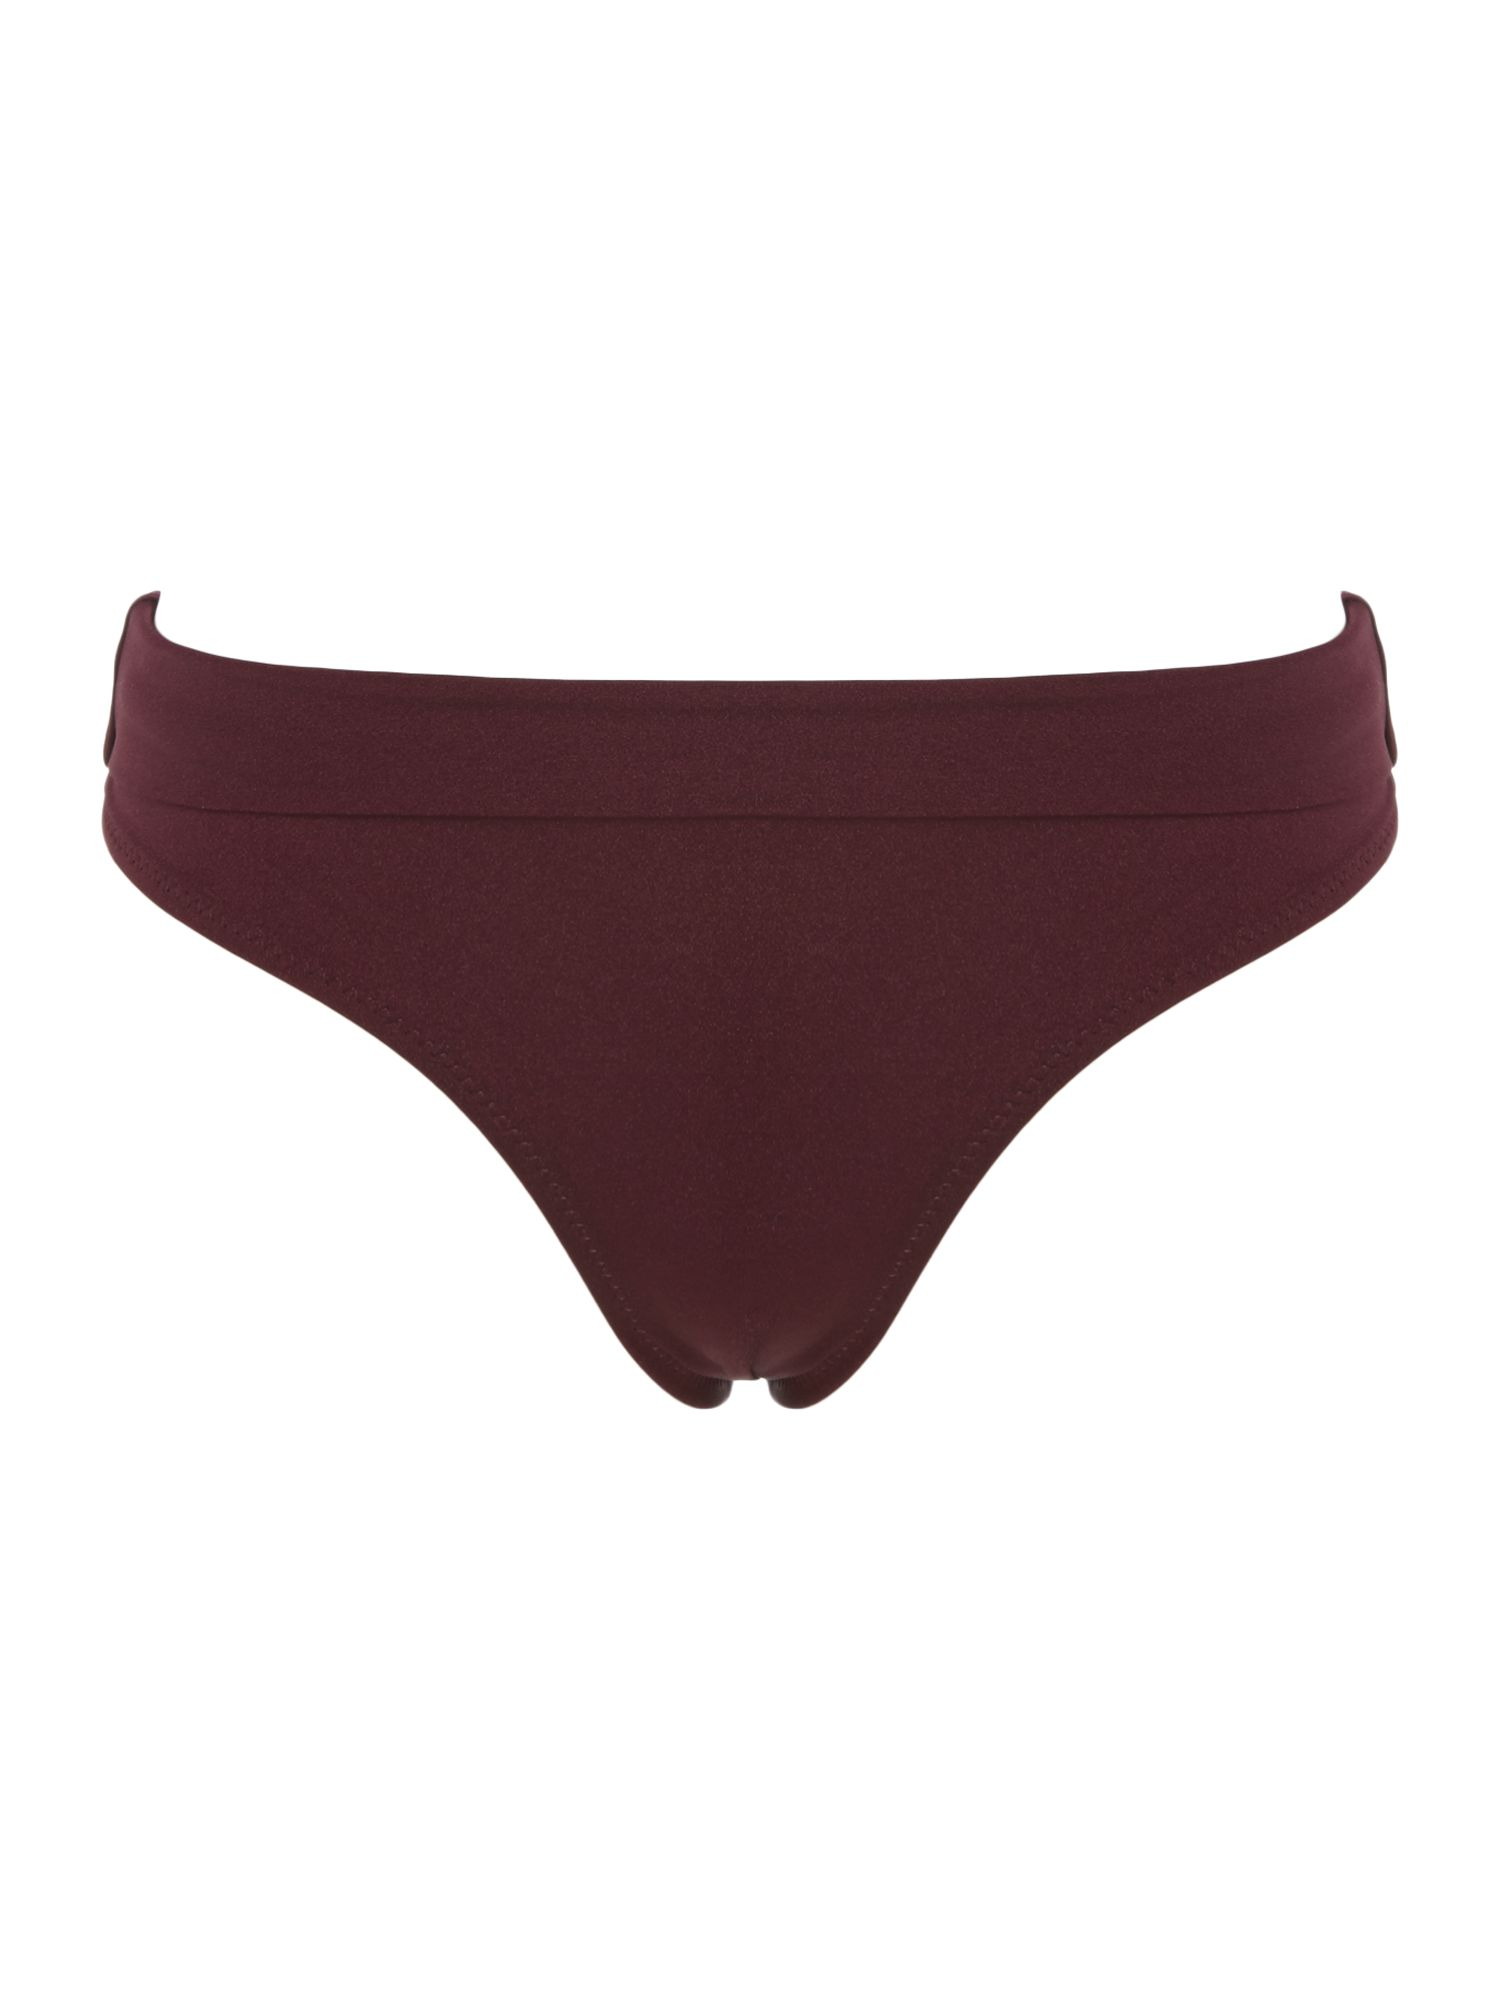 Kefalona fold over brief